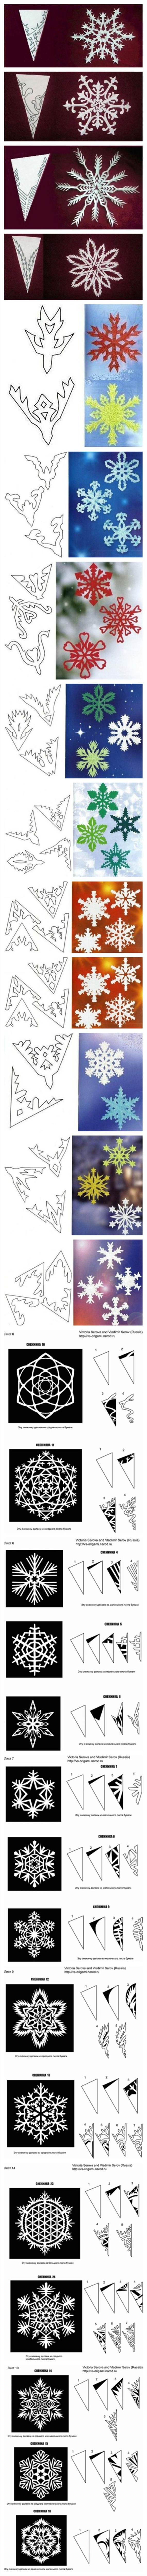 @Linnea Diggle - how to cut snowflakes